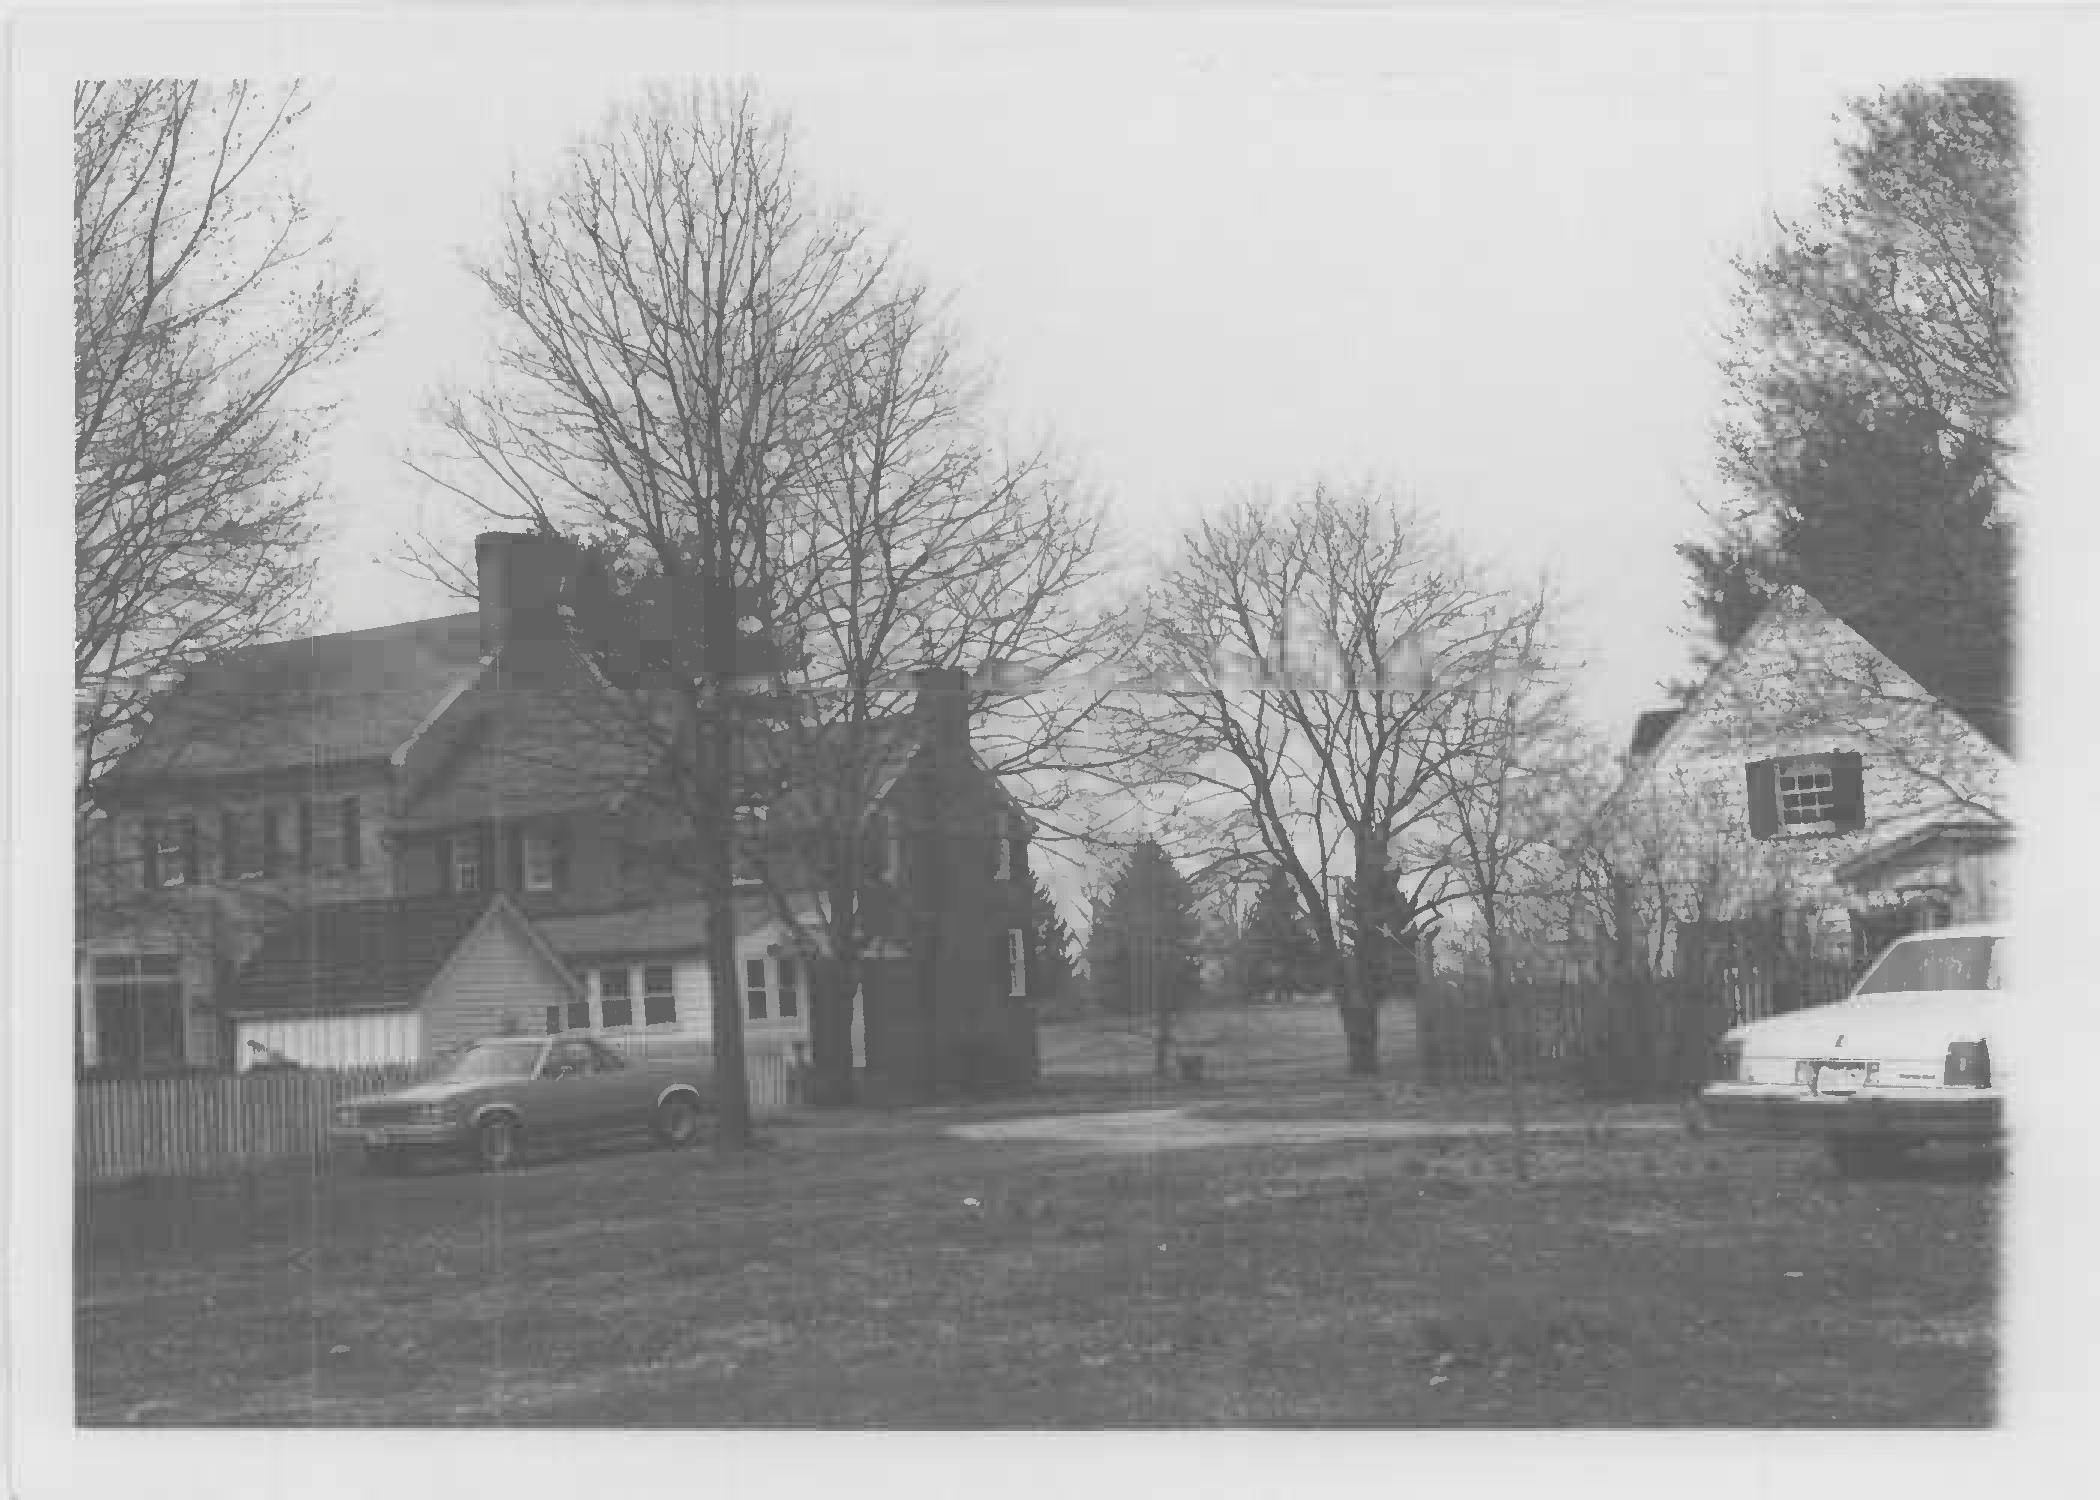 View looking northwest toward rear of house, south elevation, Whites Hall in Maryland